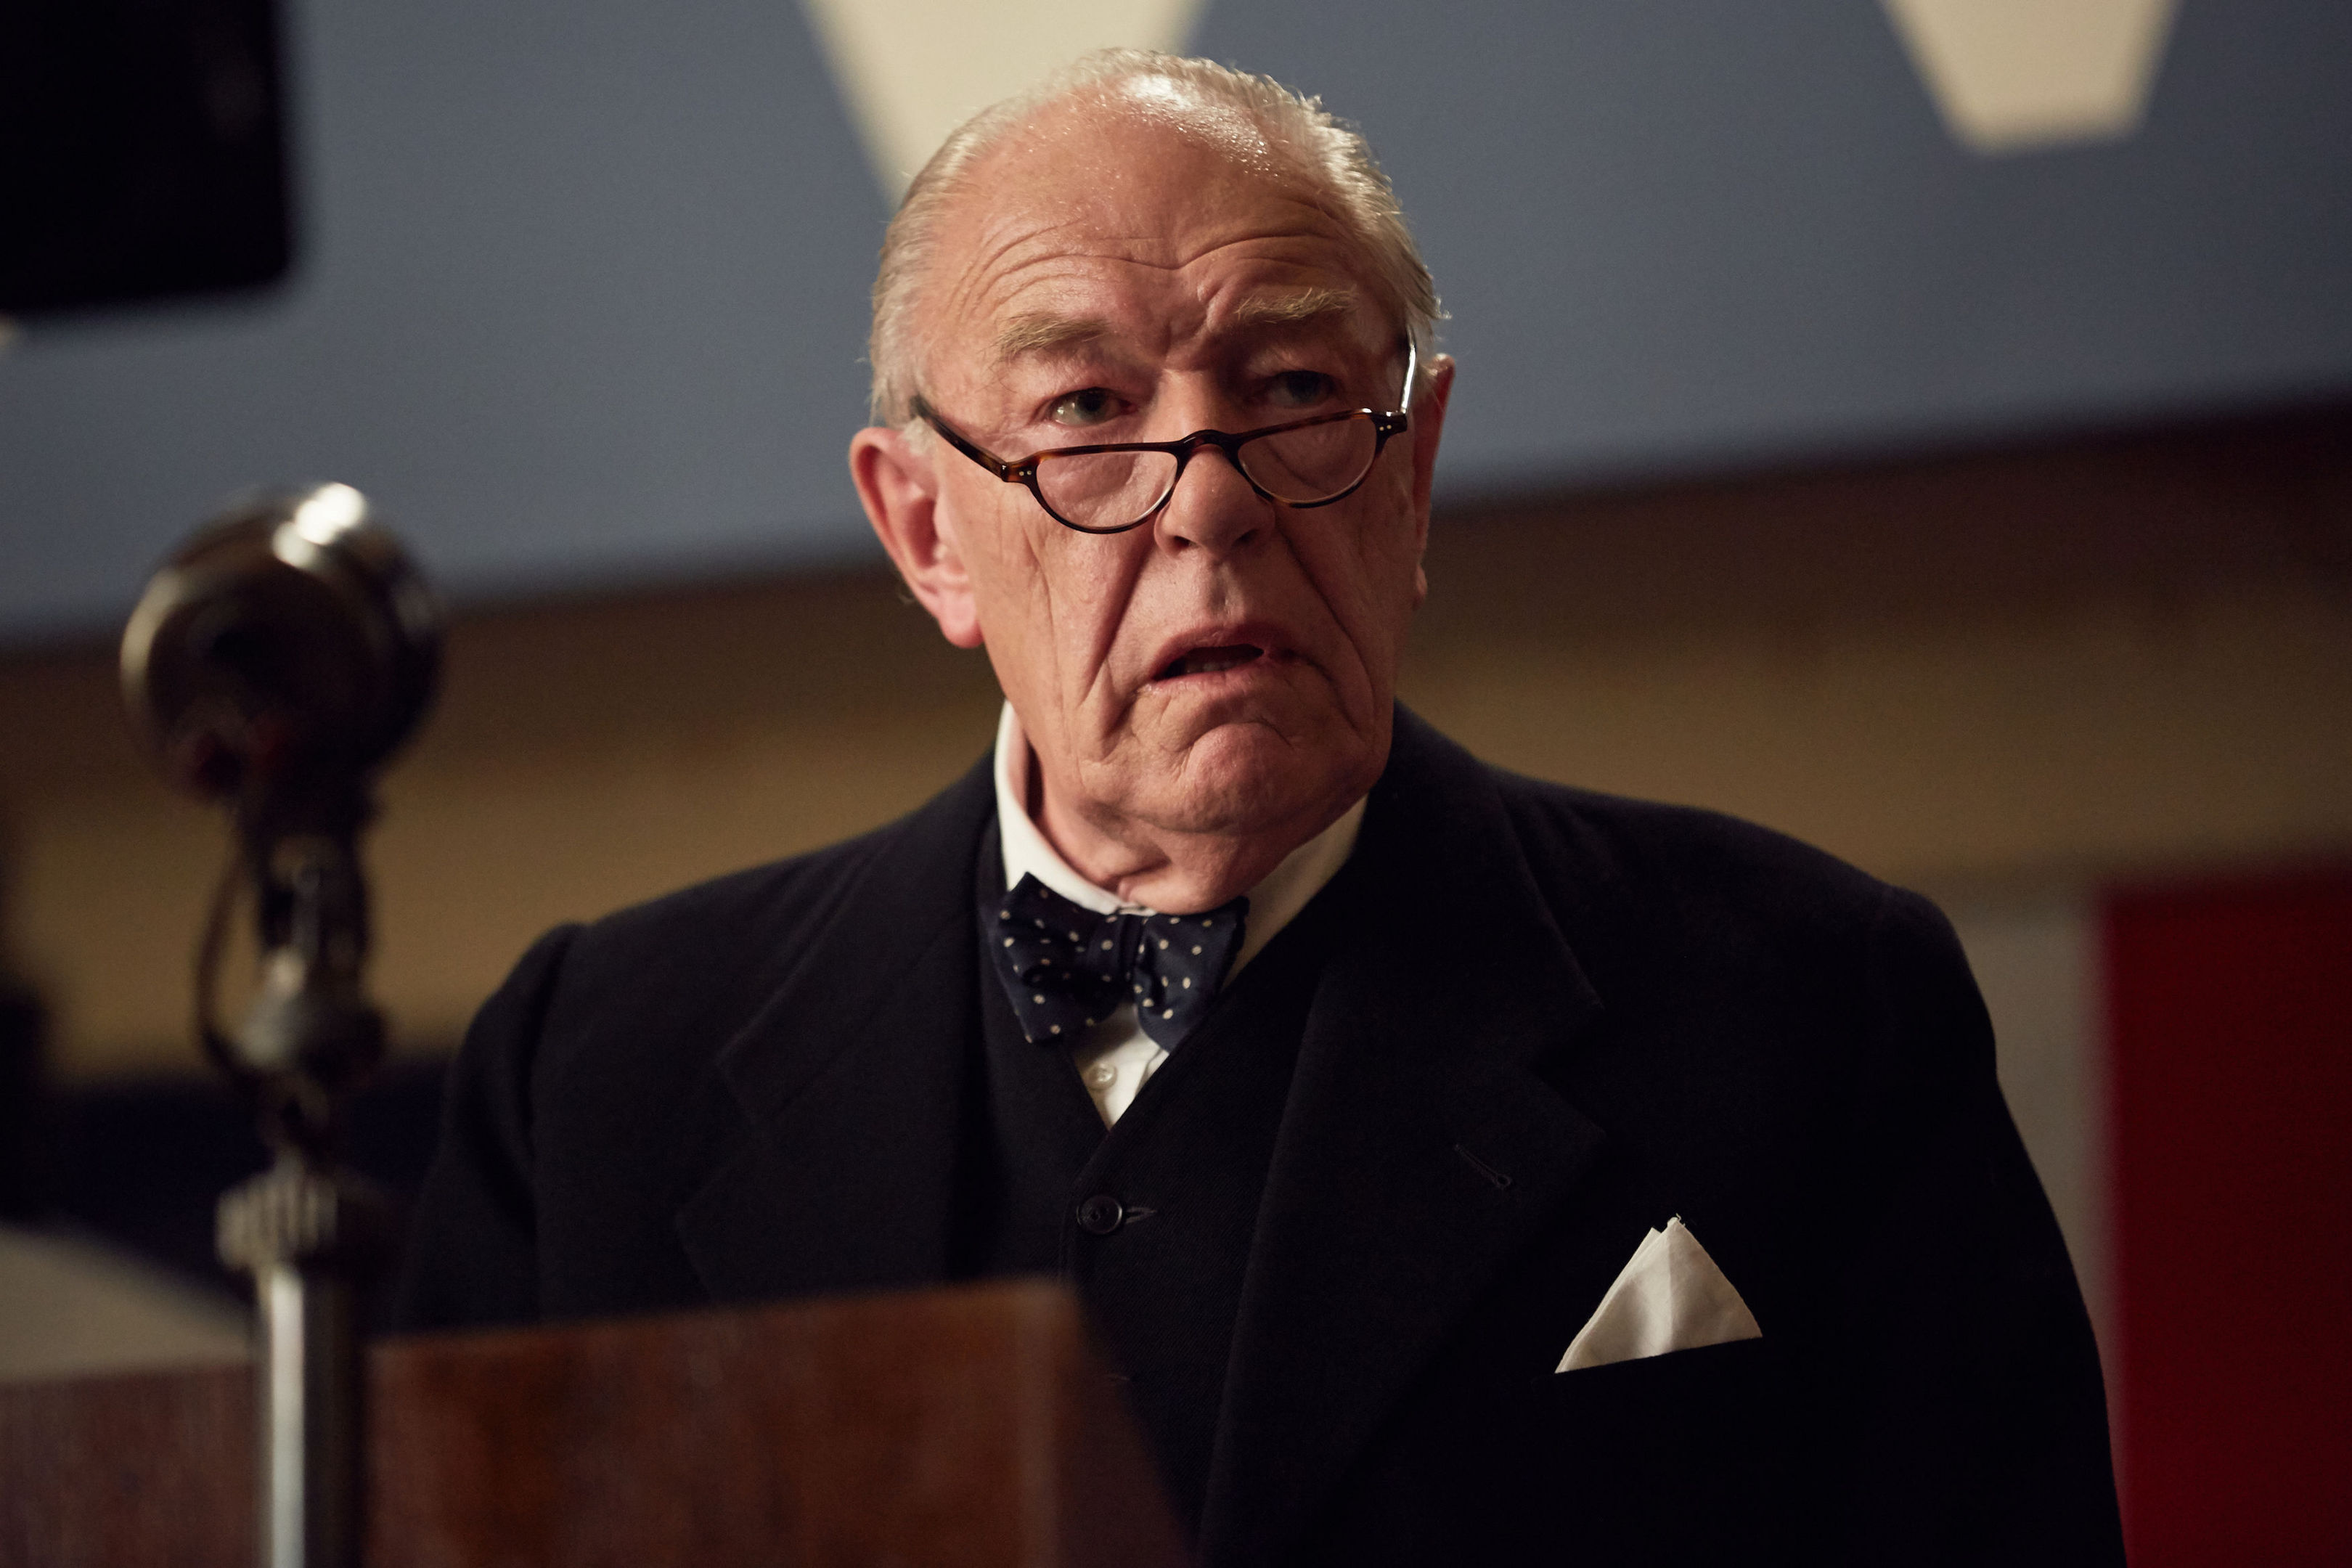 Gambon as Winston Churchill (ITV/ROBERT VIGLASKY/Daybreak)